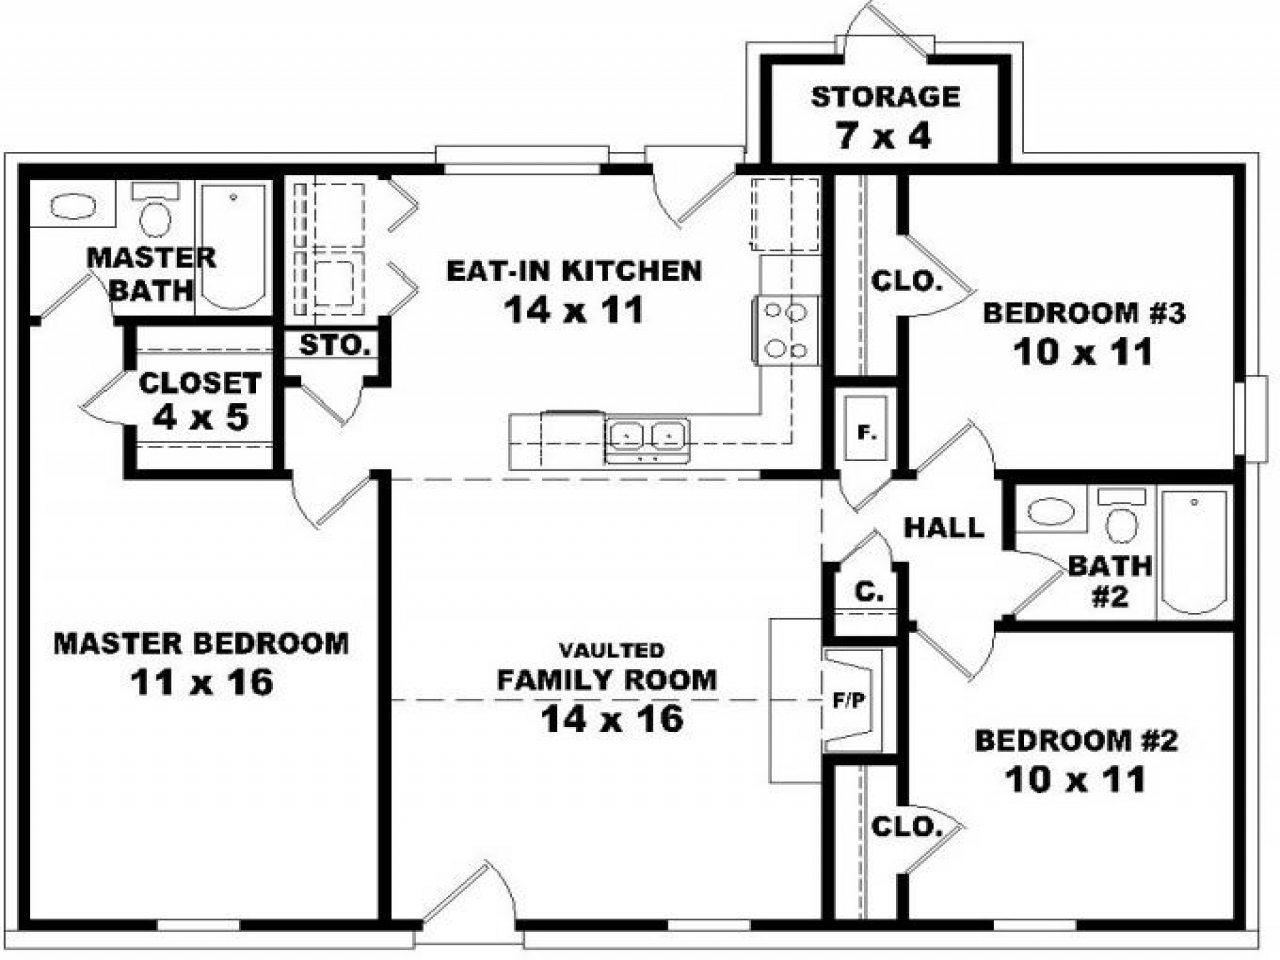 1 Bedroom 2 Bathroom House Plans House Floor Plans 3 Bedroom 2 Bath Floor Plans For 3